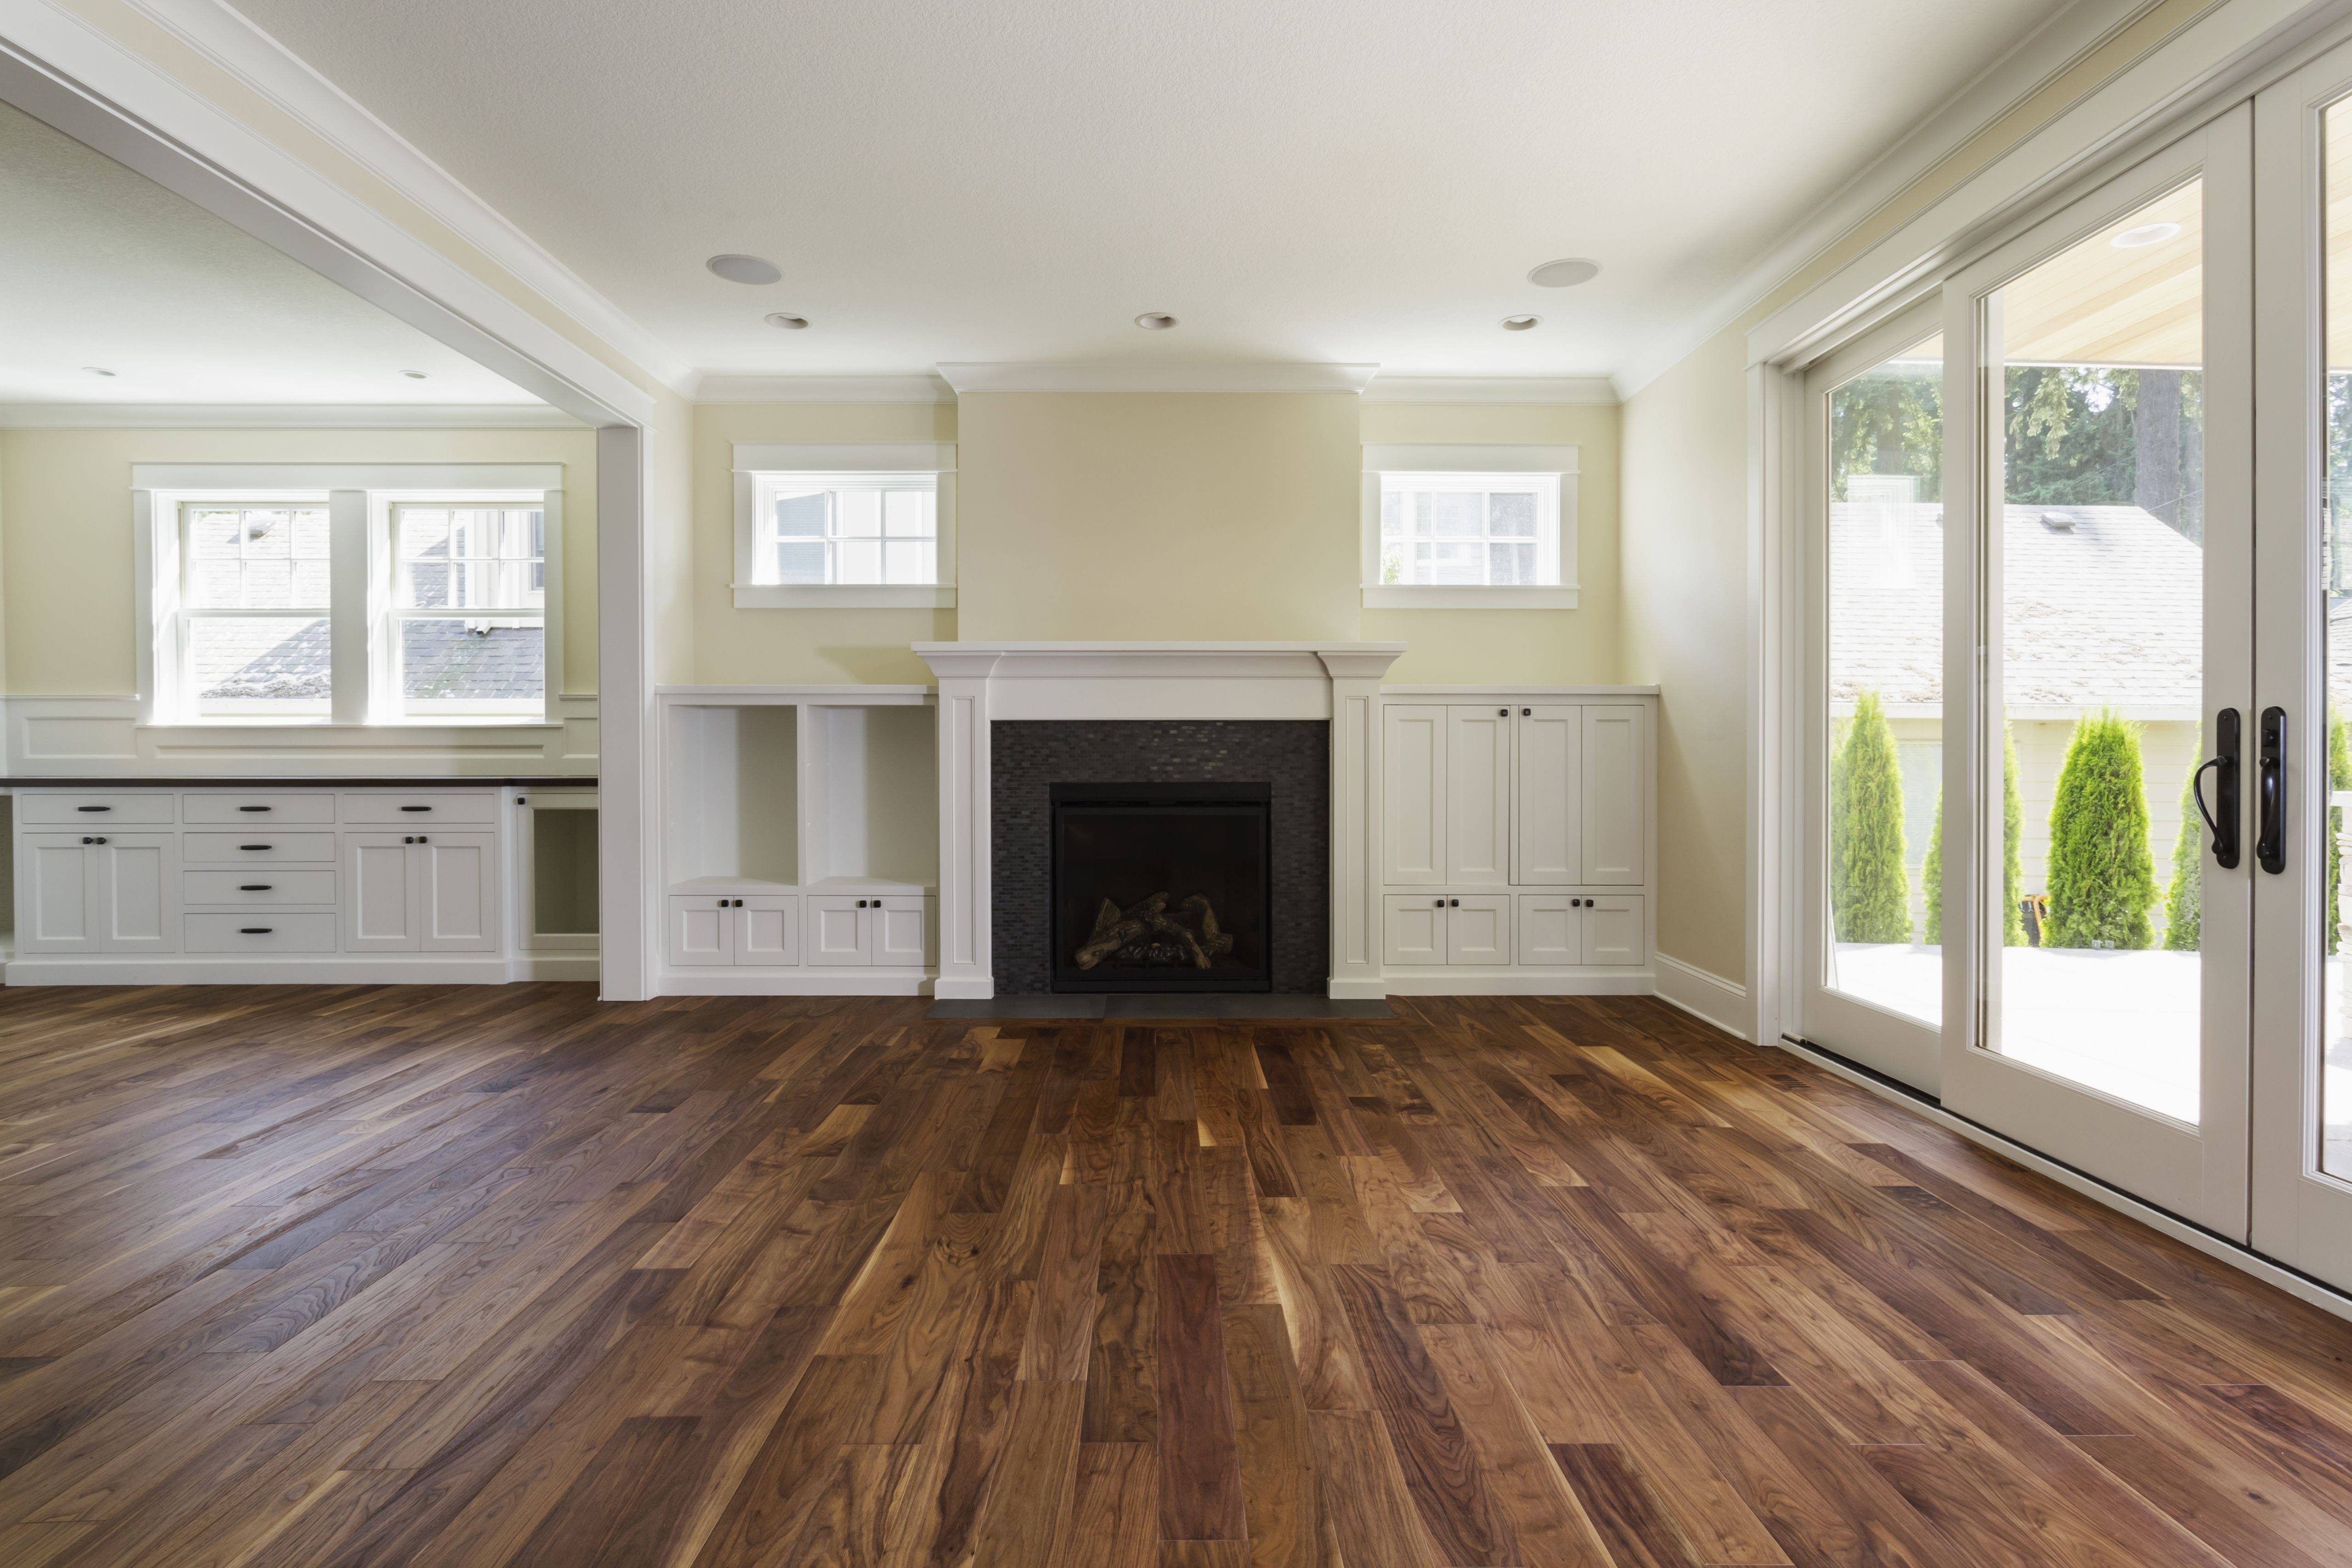 estimated cost to refinish hardwood floors of the pros and cons of prefinished hardwood flooring regarding fireplace and built in shelves in living room 482143011 57bef8e33df78cc16e035397